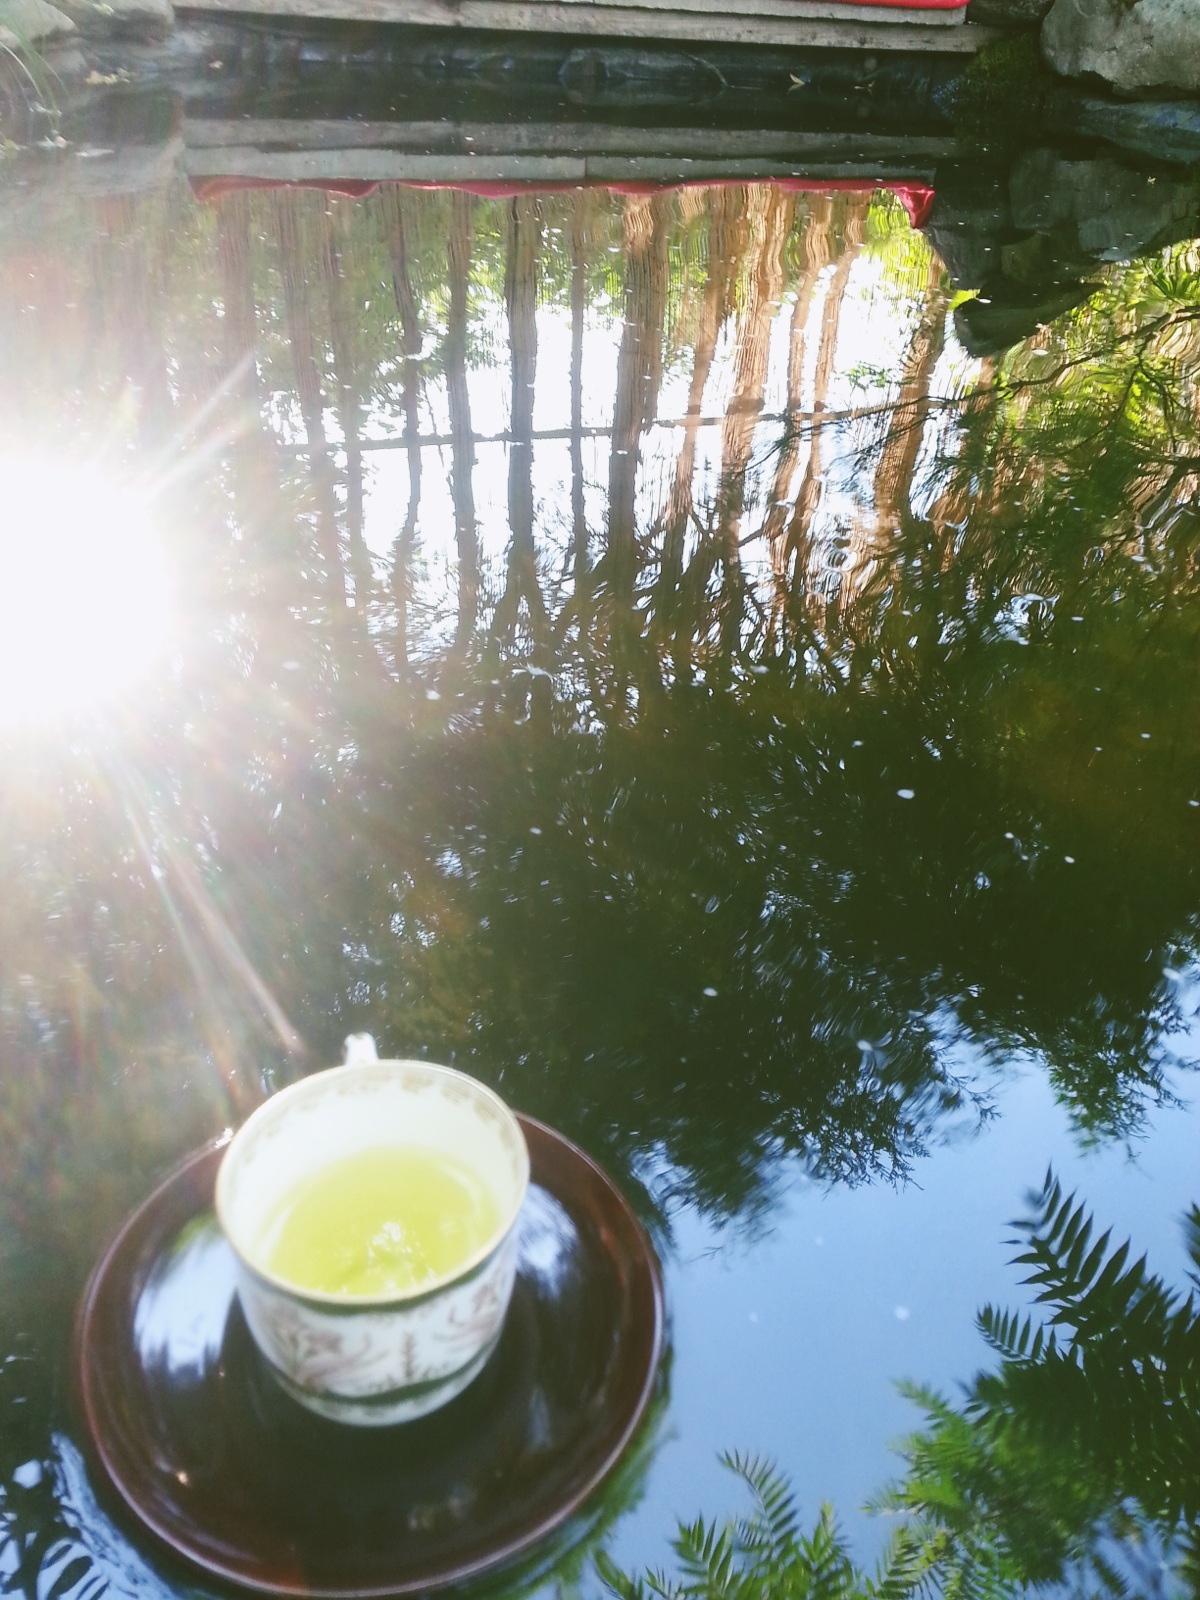 Floating teacups in afternoon light